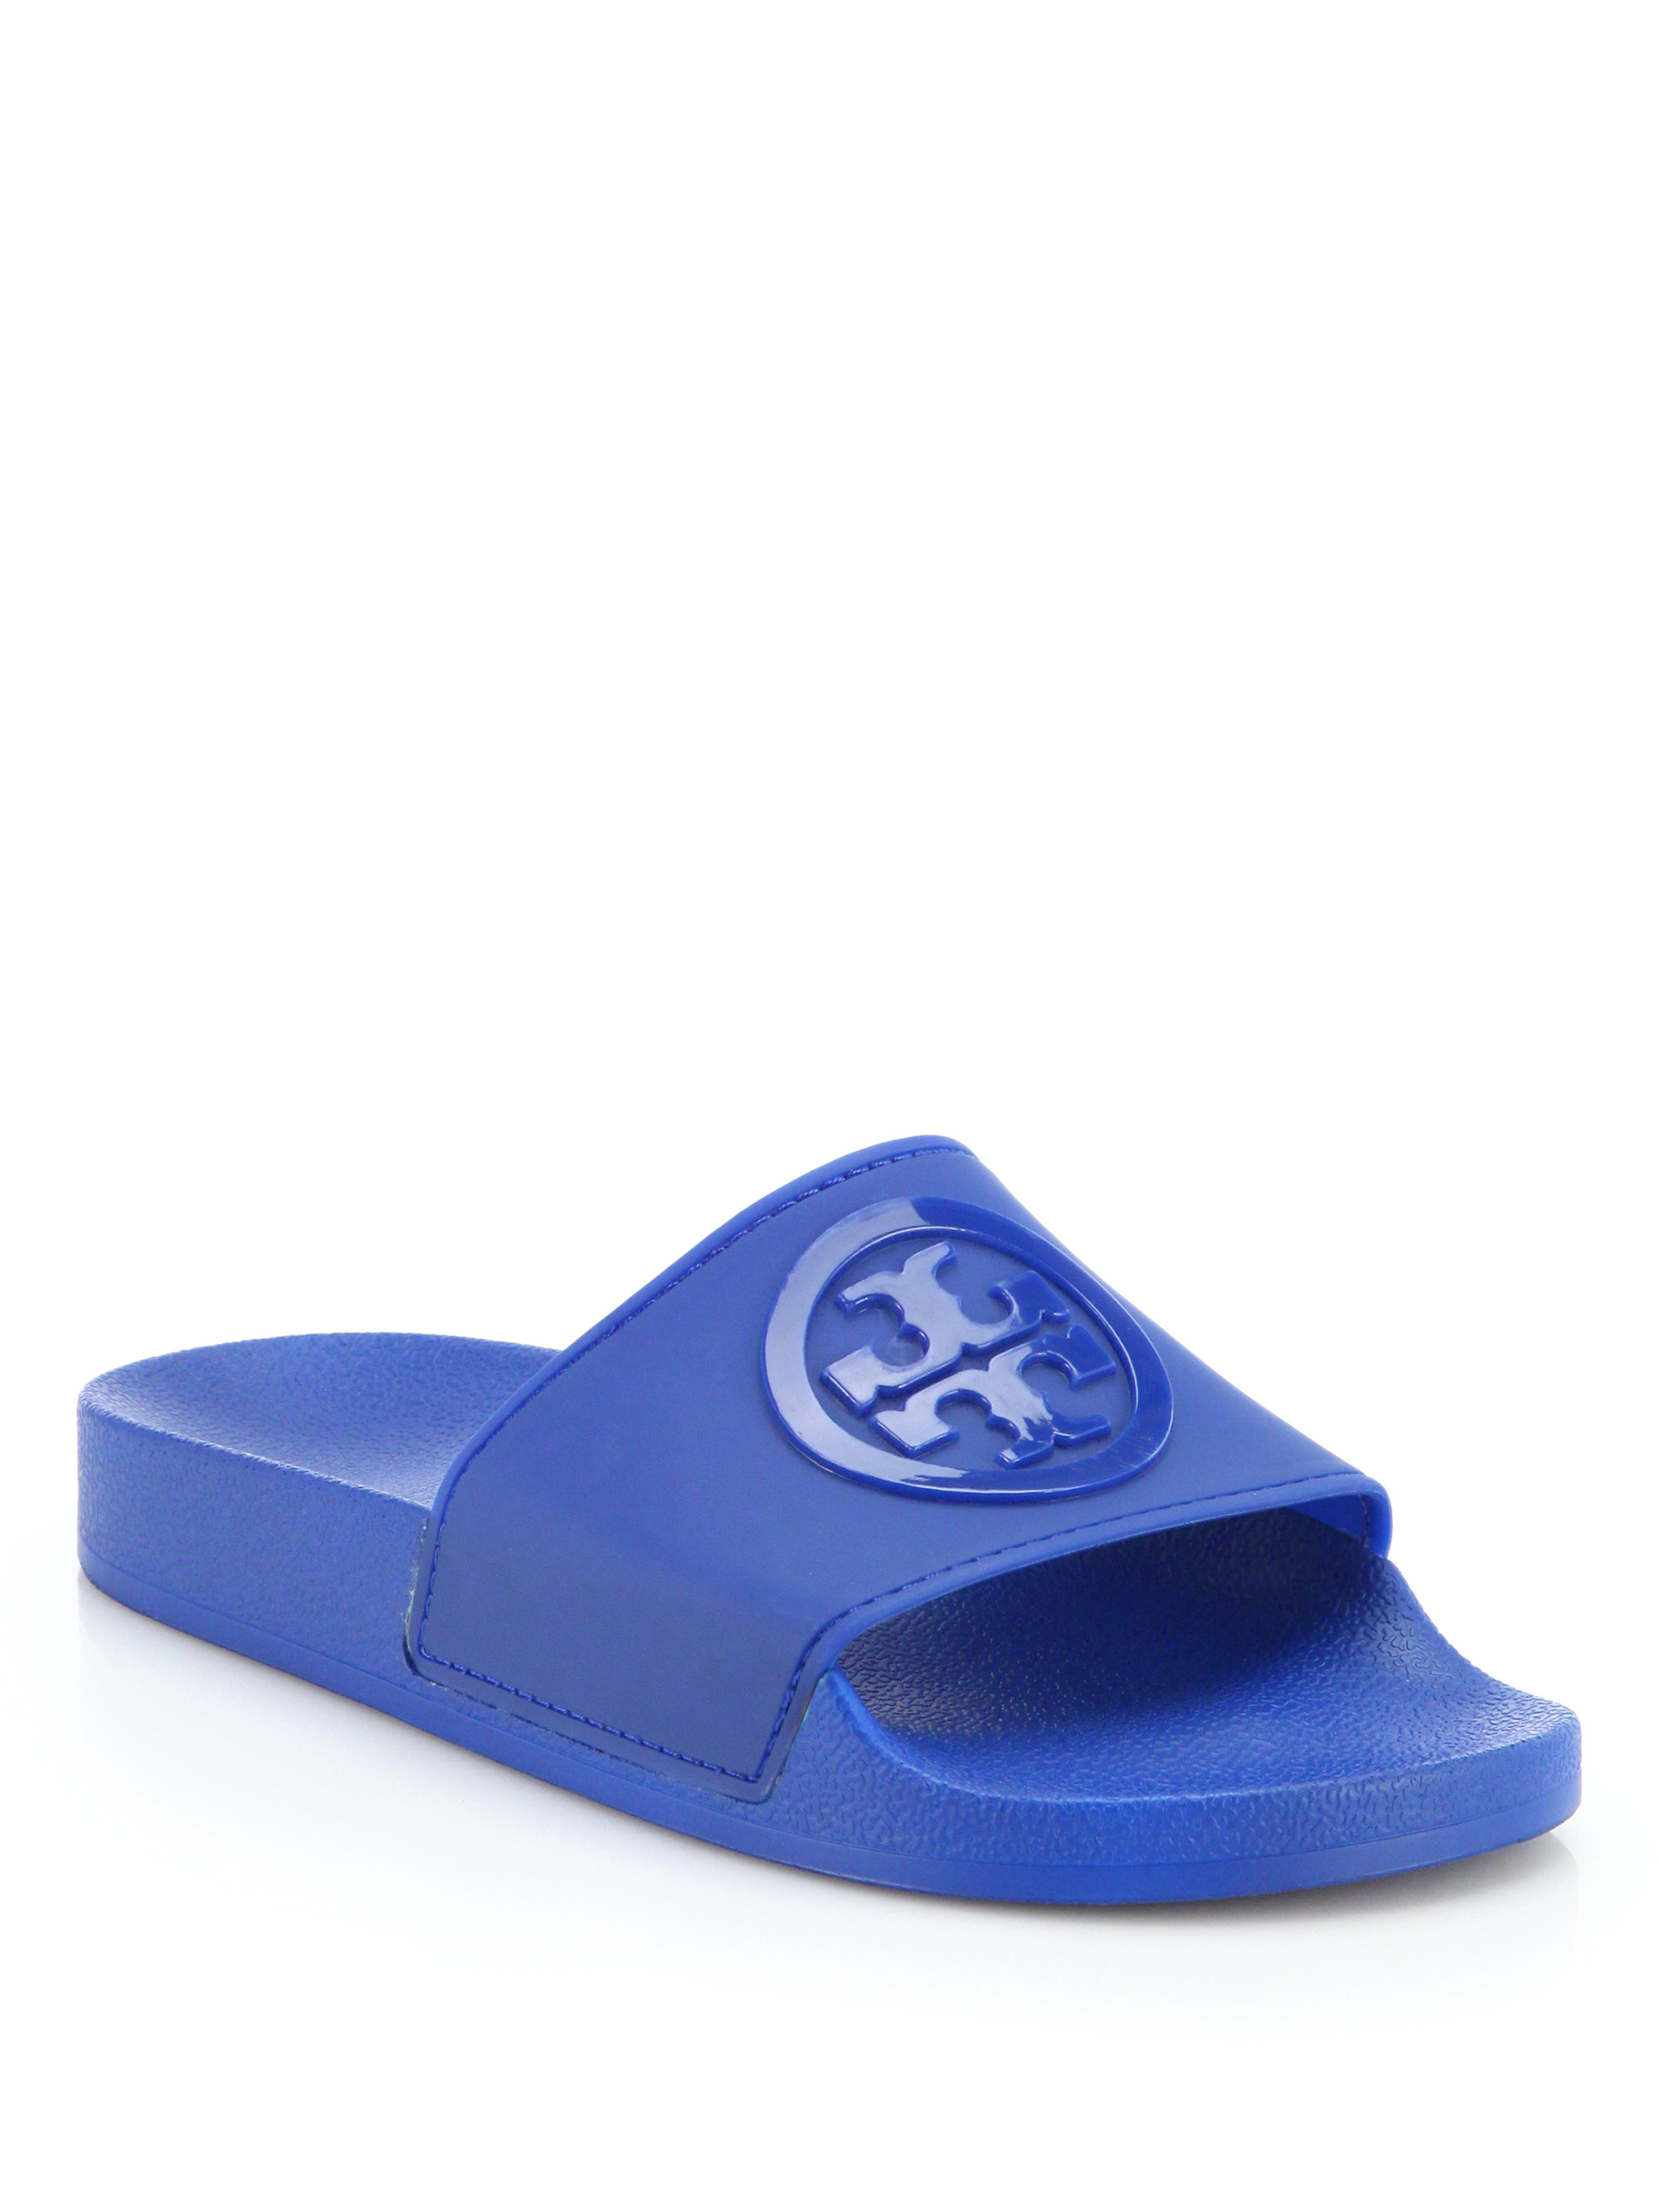 22c99a598 Lyst - Tory Burch Jelly Anatomic Flat Slides in Blue